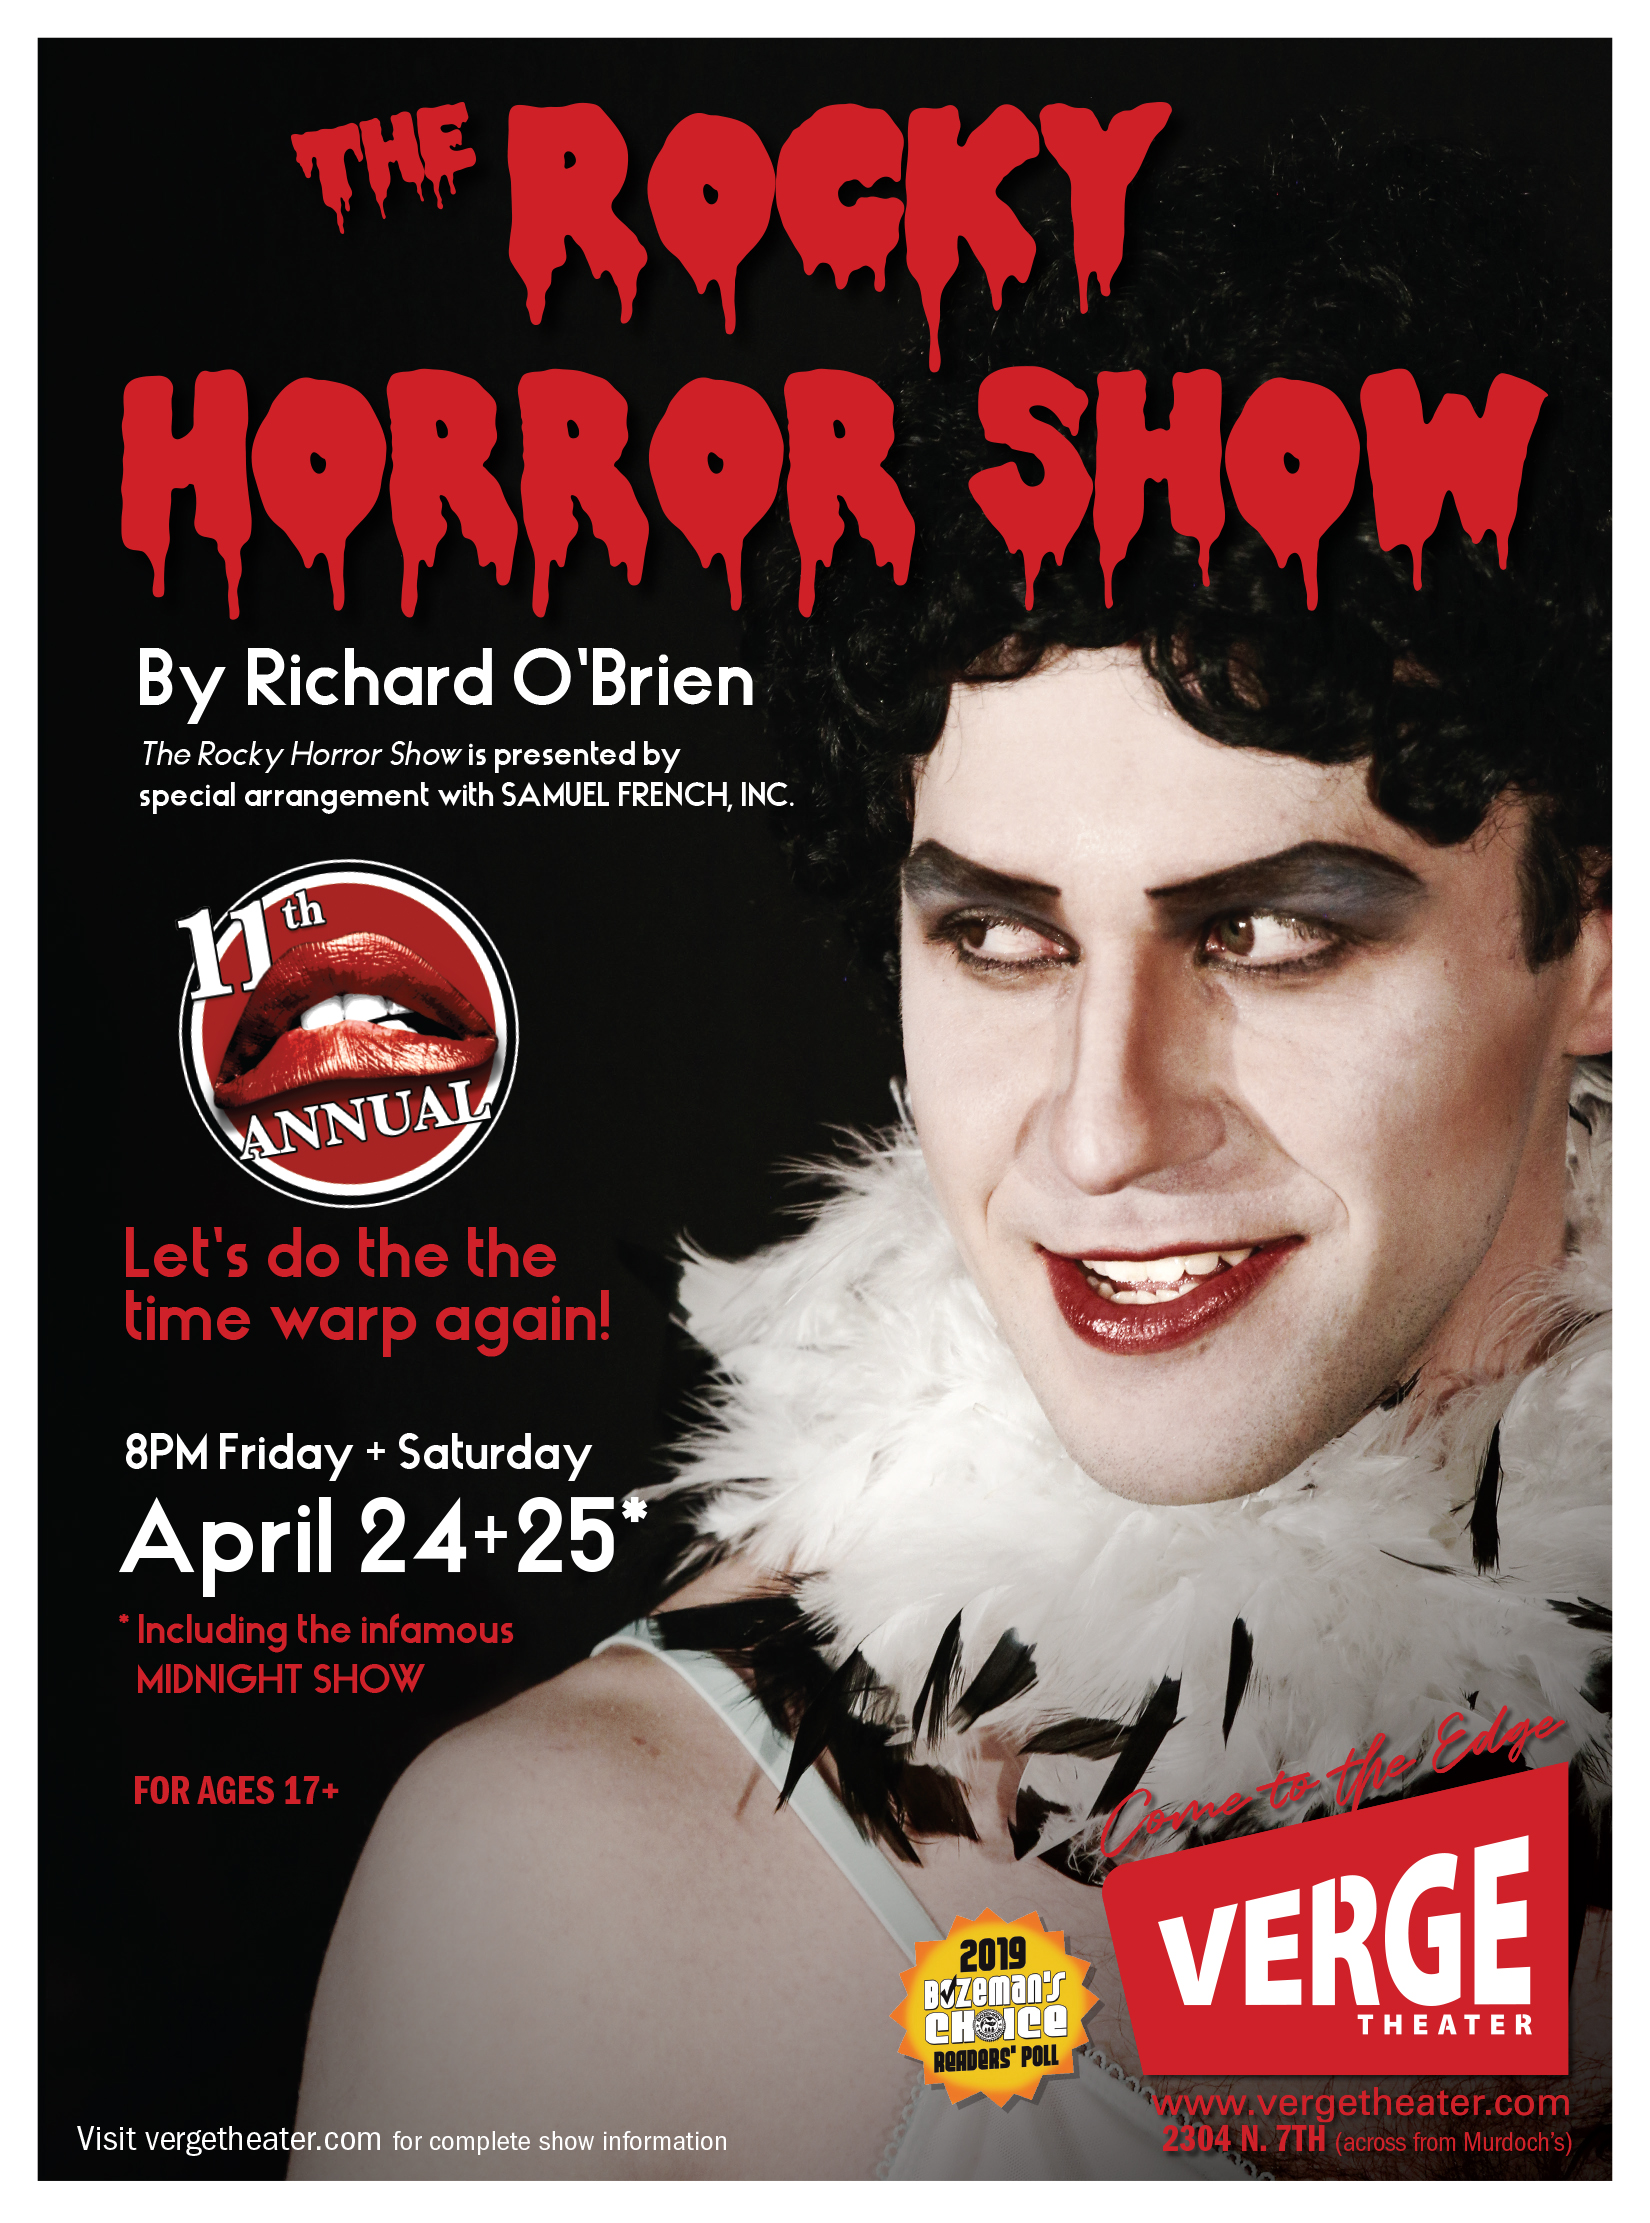 The Rocky Horror Show Poster 11 x 17 for website.jpg